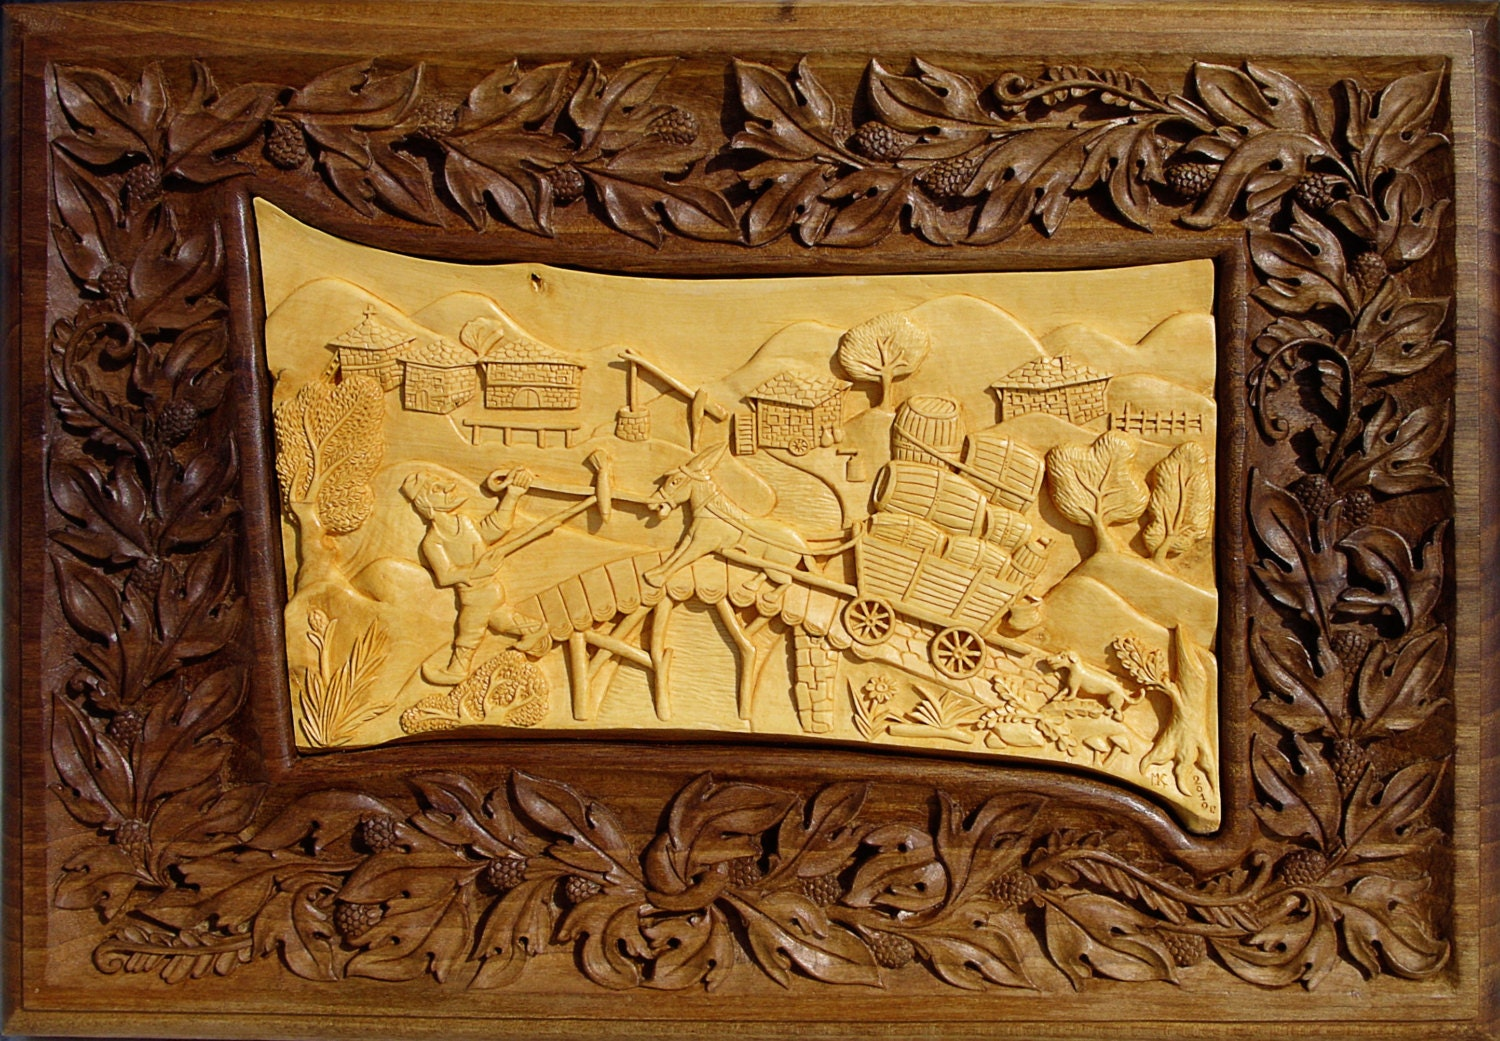 Wall art wood carving decor rustic cabin